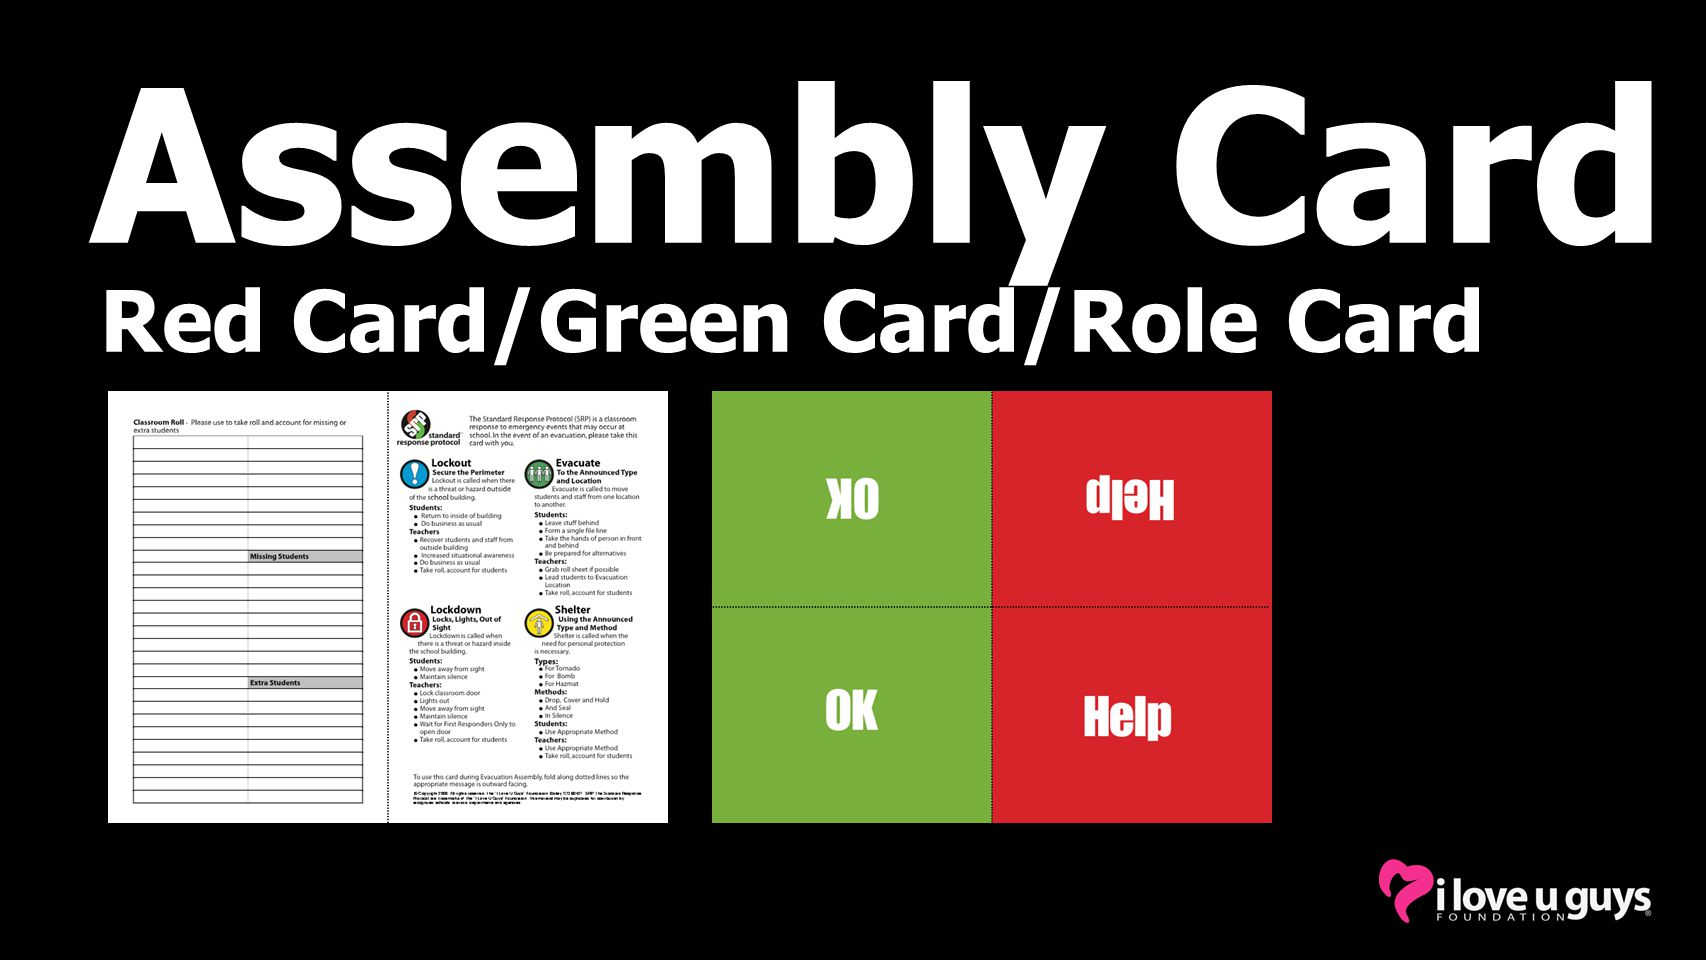 Assembly Card Red Card/Green Card/Role Card